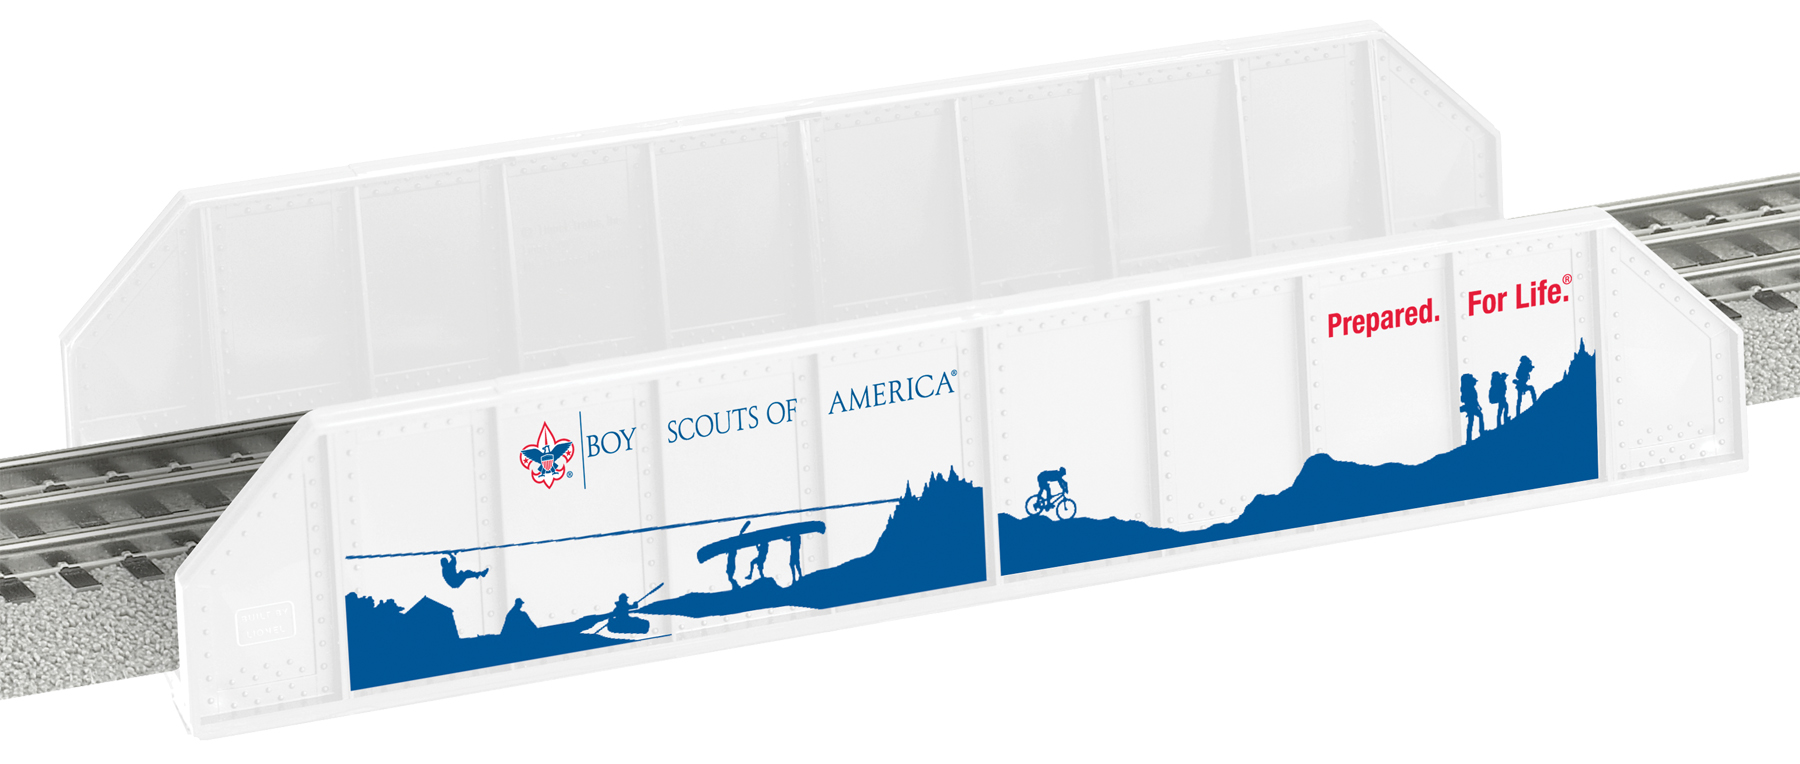 Boy Scouts of America® Girder Bridge image